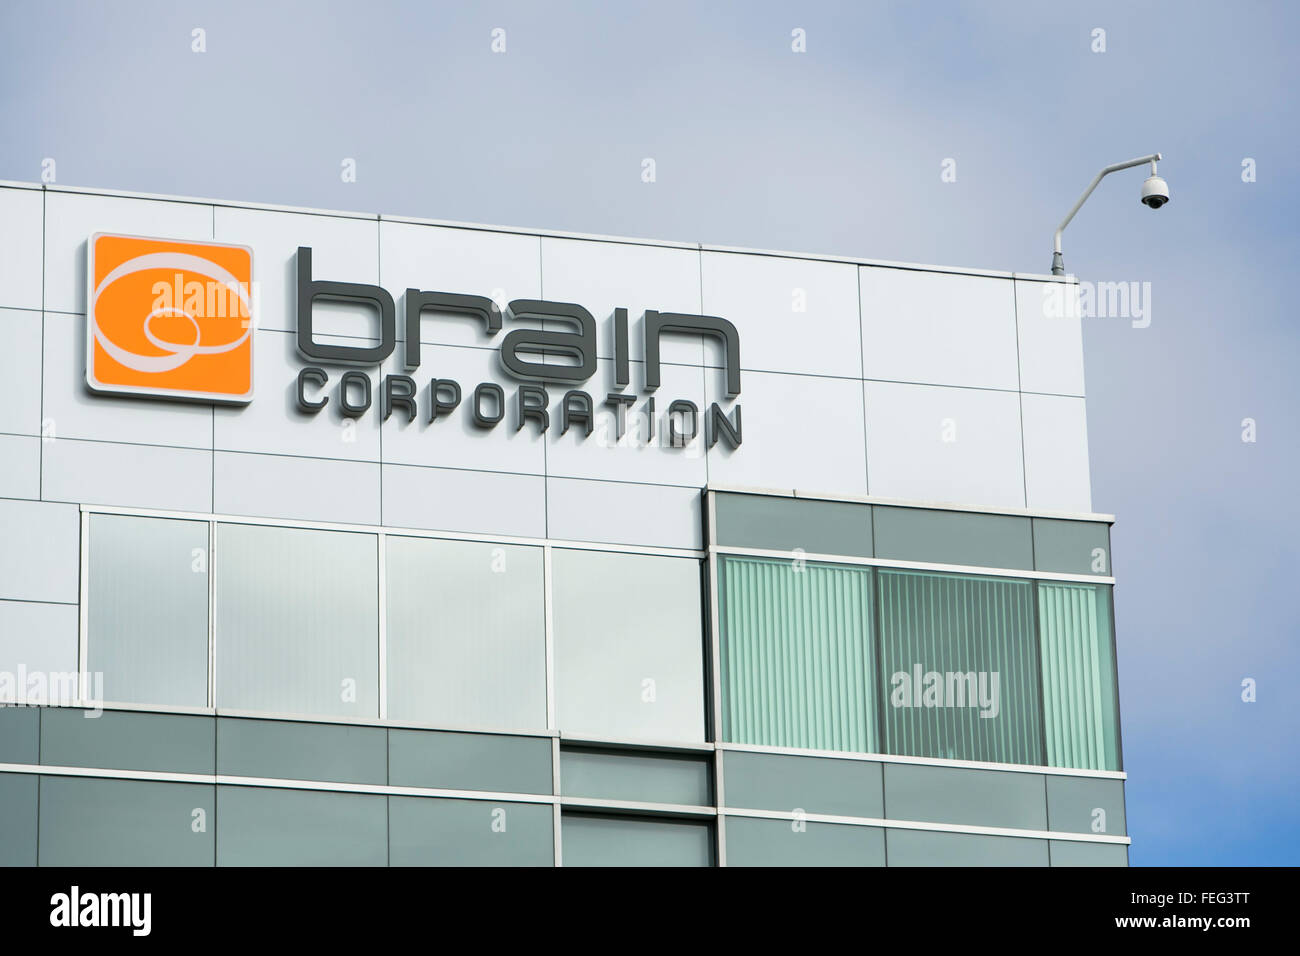 A logo sign outside of the headquarters of the Brain Corporation in San Diego, California on January 30, 2016. - Stock Image